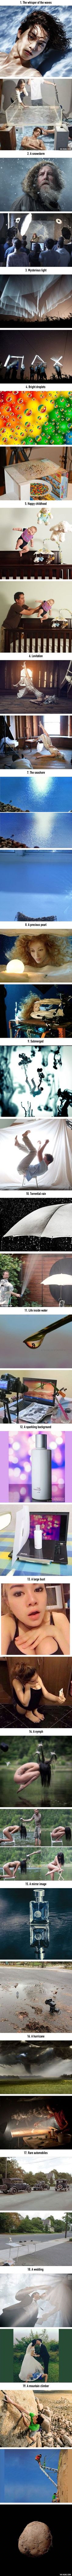 19 photos showing the incredible tricks people use to get the perfect shot.............the root of my trust issues